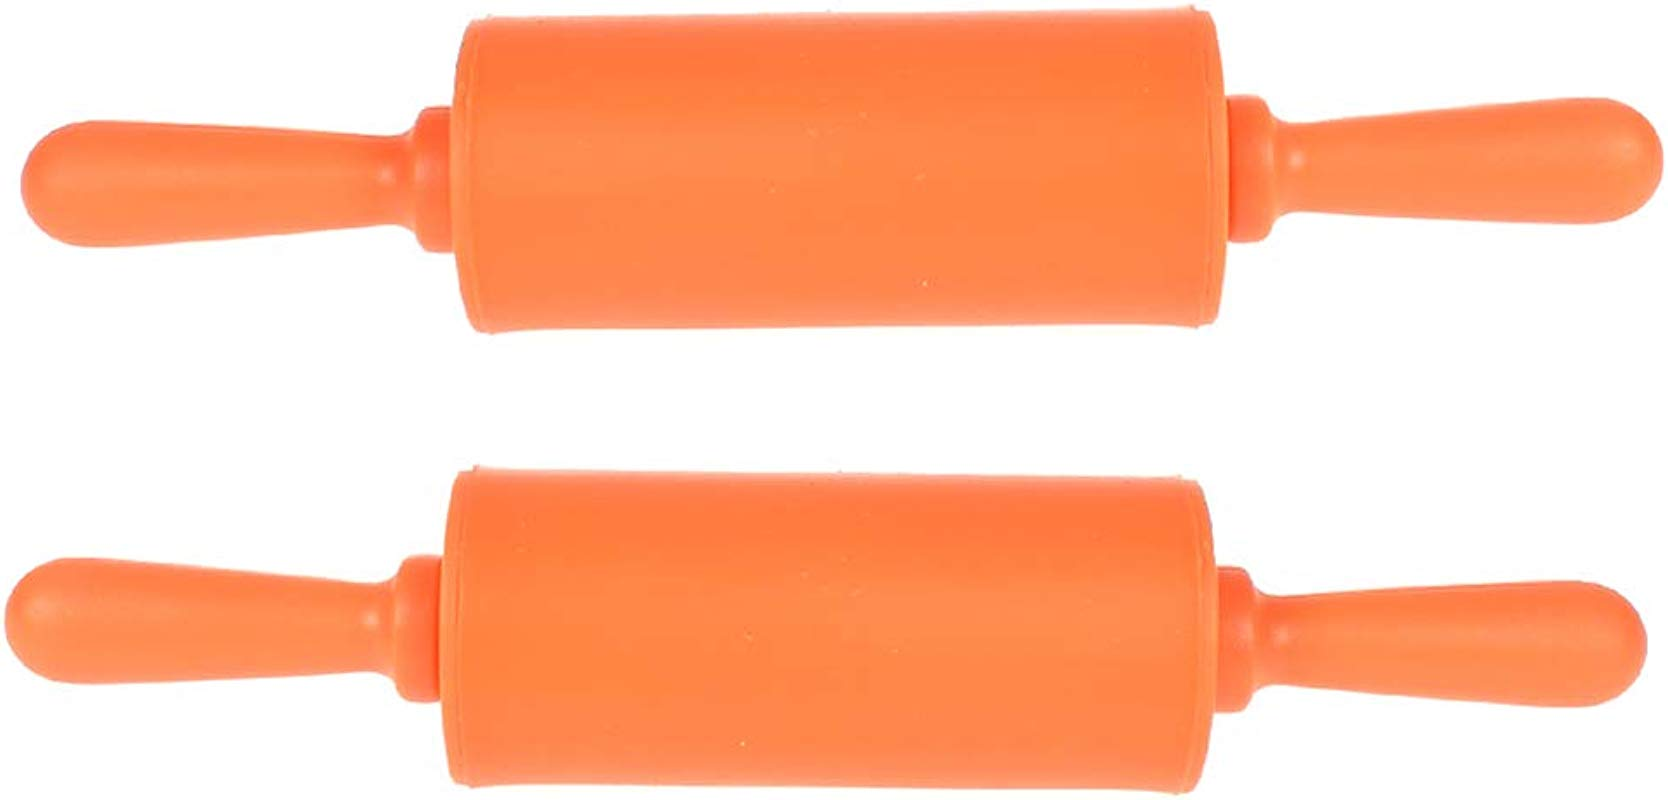 NUOMI Kids Rolling Pin For Baking Playdough 2 Pack Non Stick Silicone Small Rolling Pins For Home Kitchen